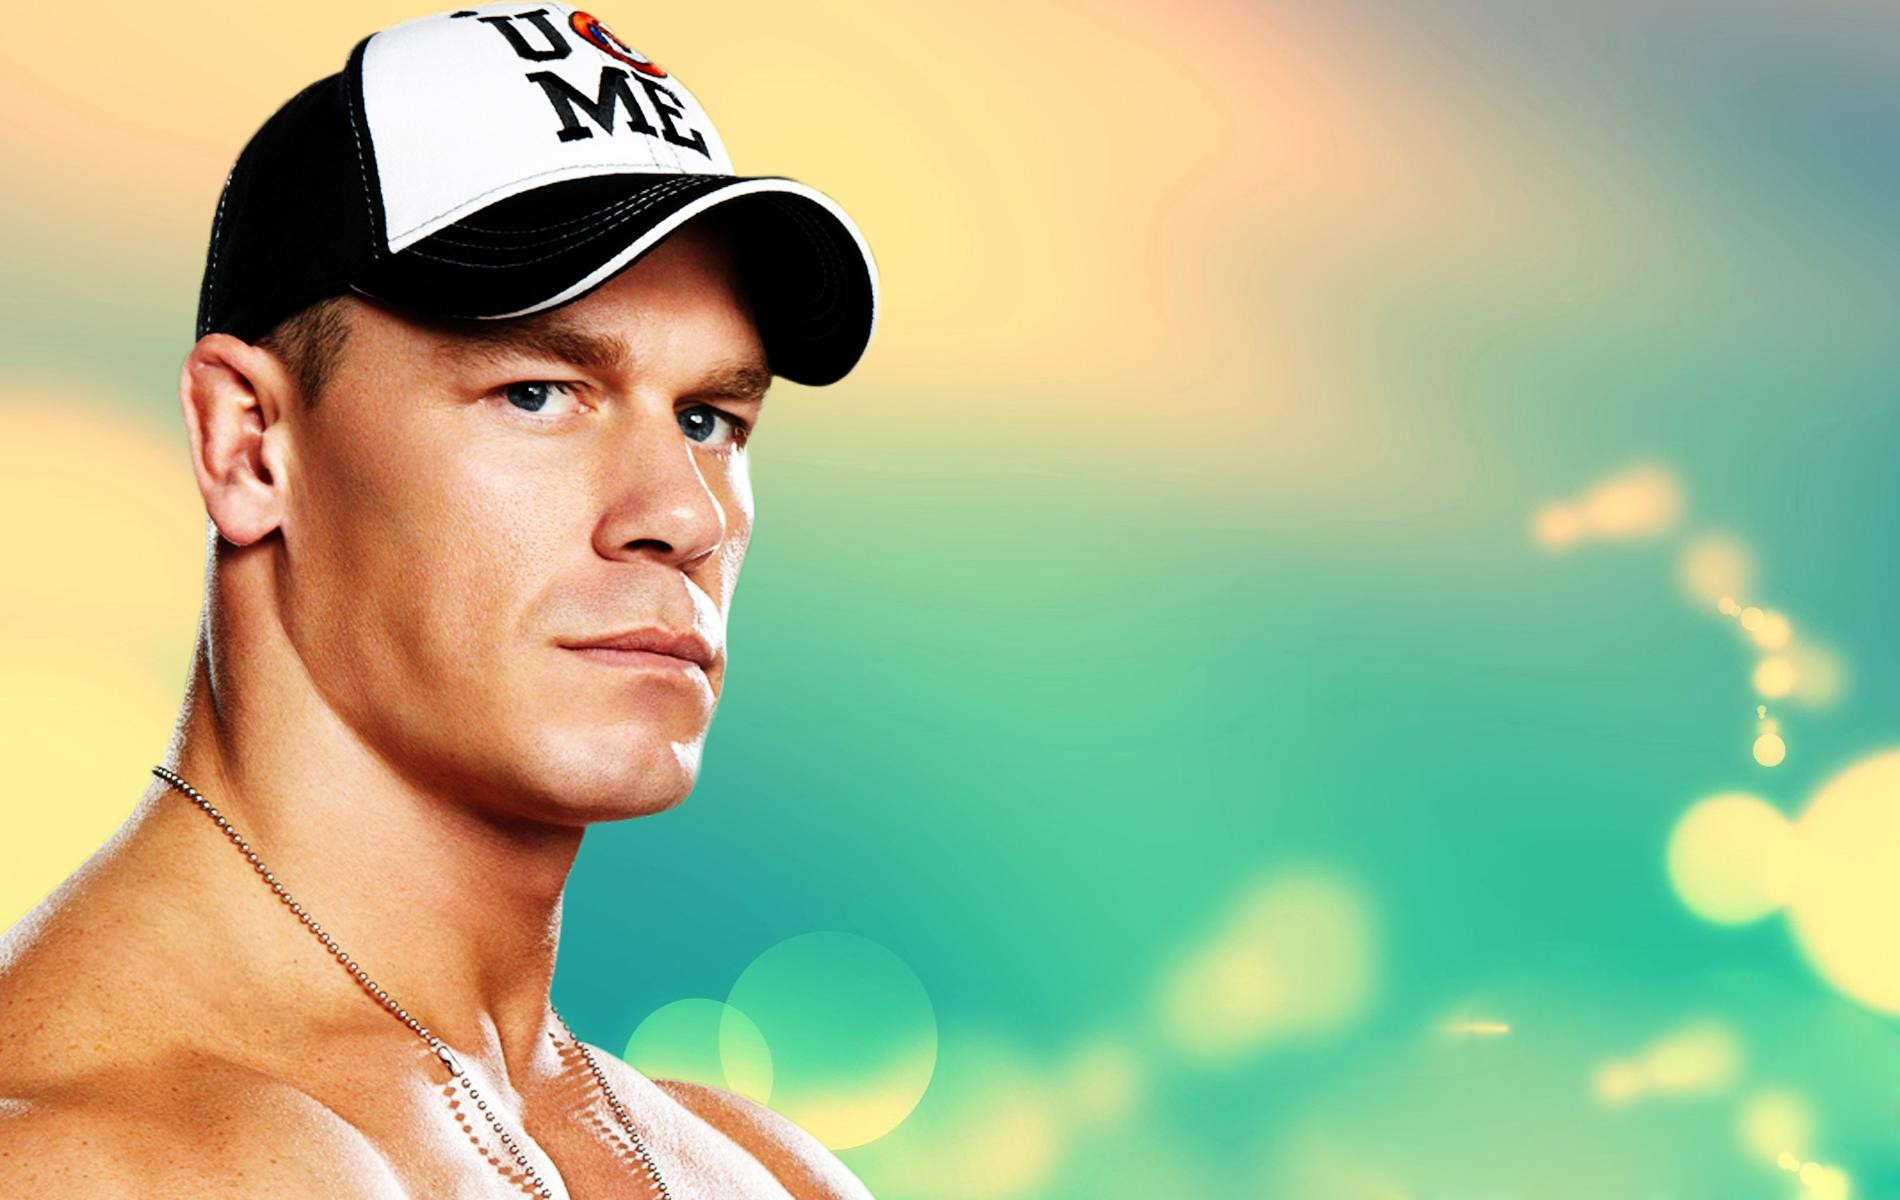 John-Cena-Hd-Free-Download-WWE-HD-FREE-DOWNLOAD-wallpaper-wp3407615